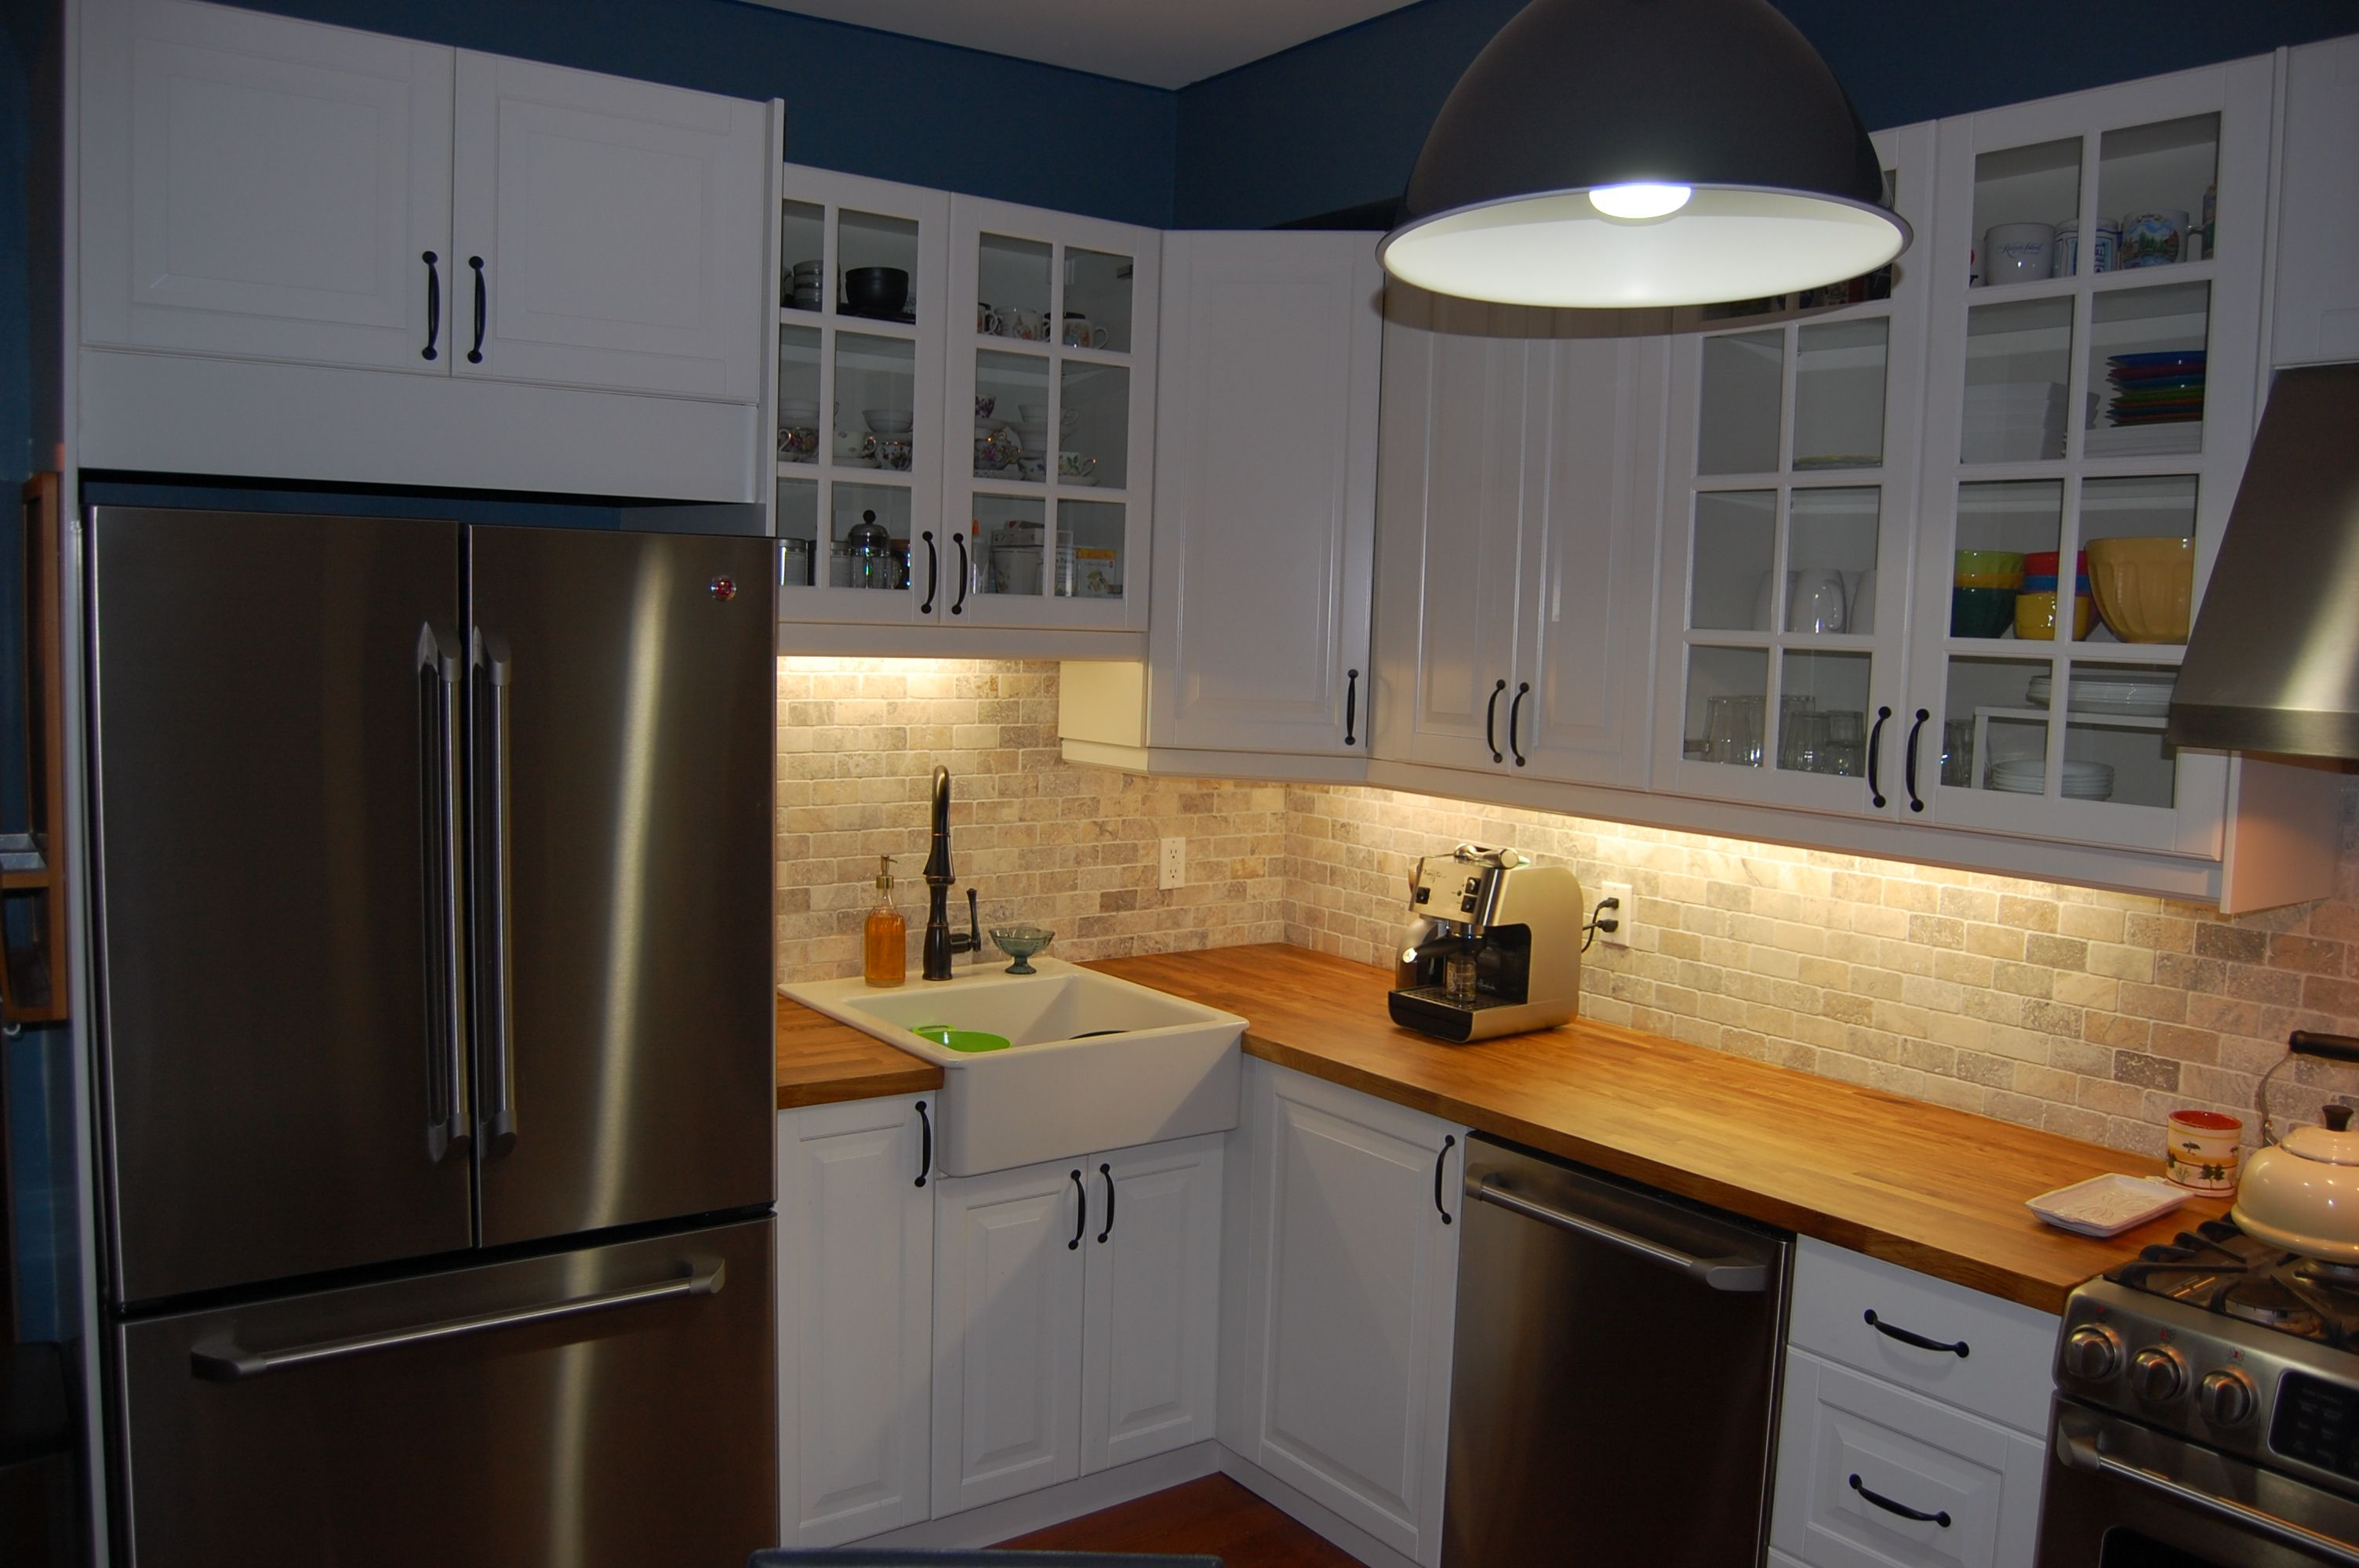 Kitchen   White Ikea Cabinets, Butcher Block Counter, Tumbled Stone  Backsplash